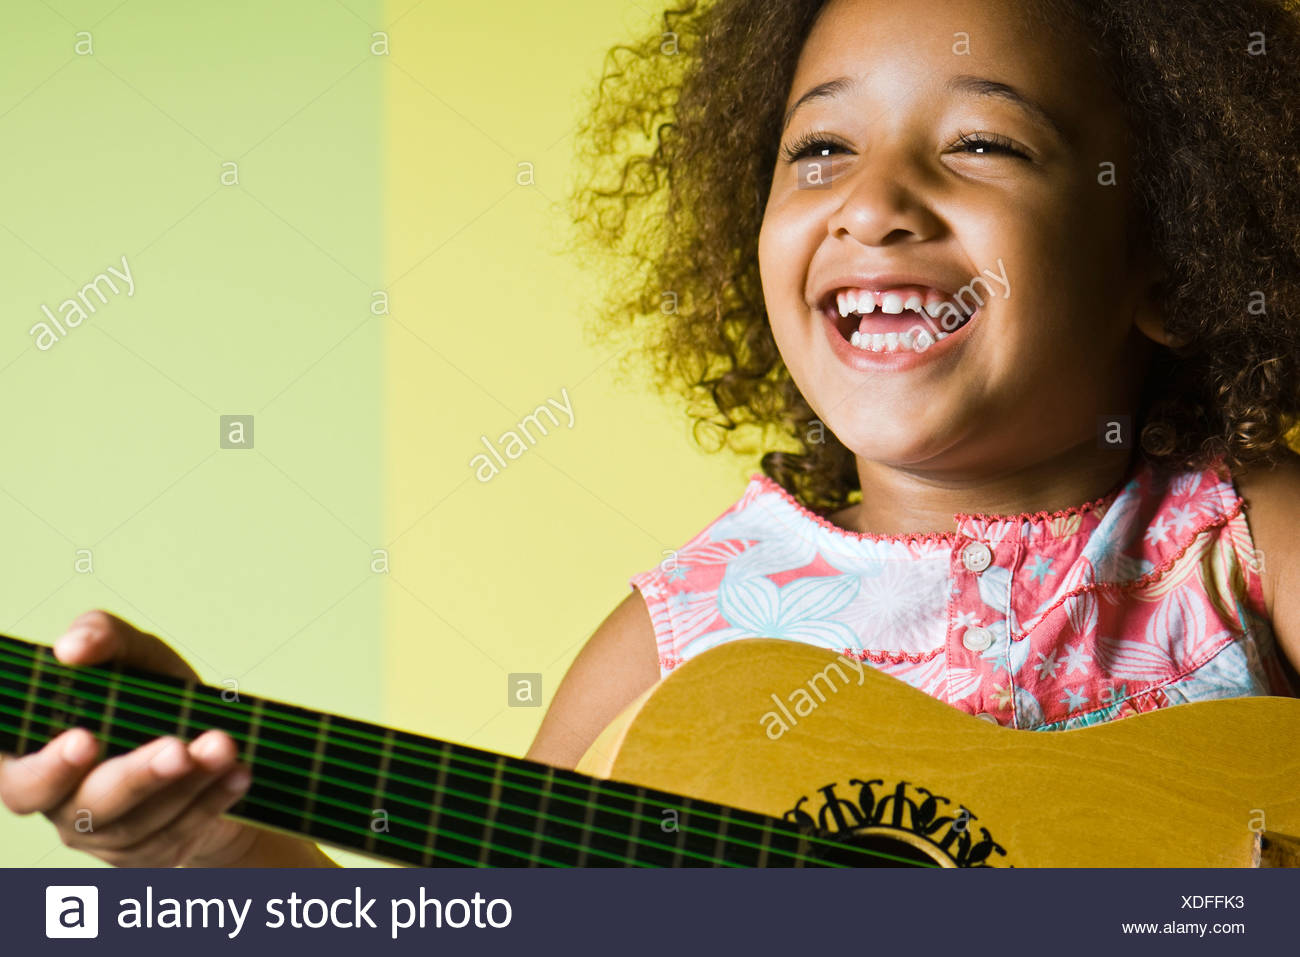 Little girl playing guitar - Stock Image